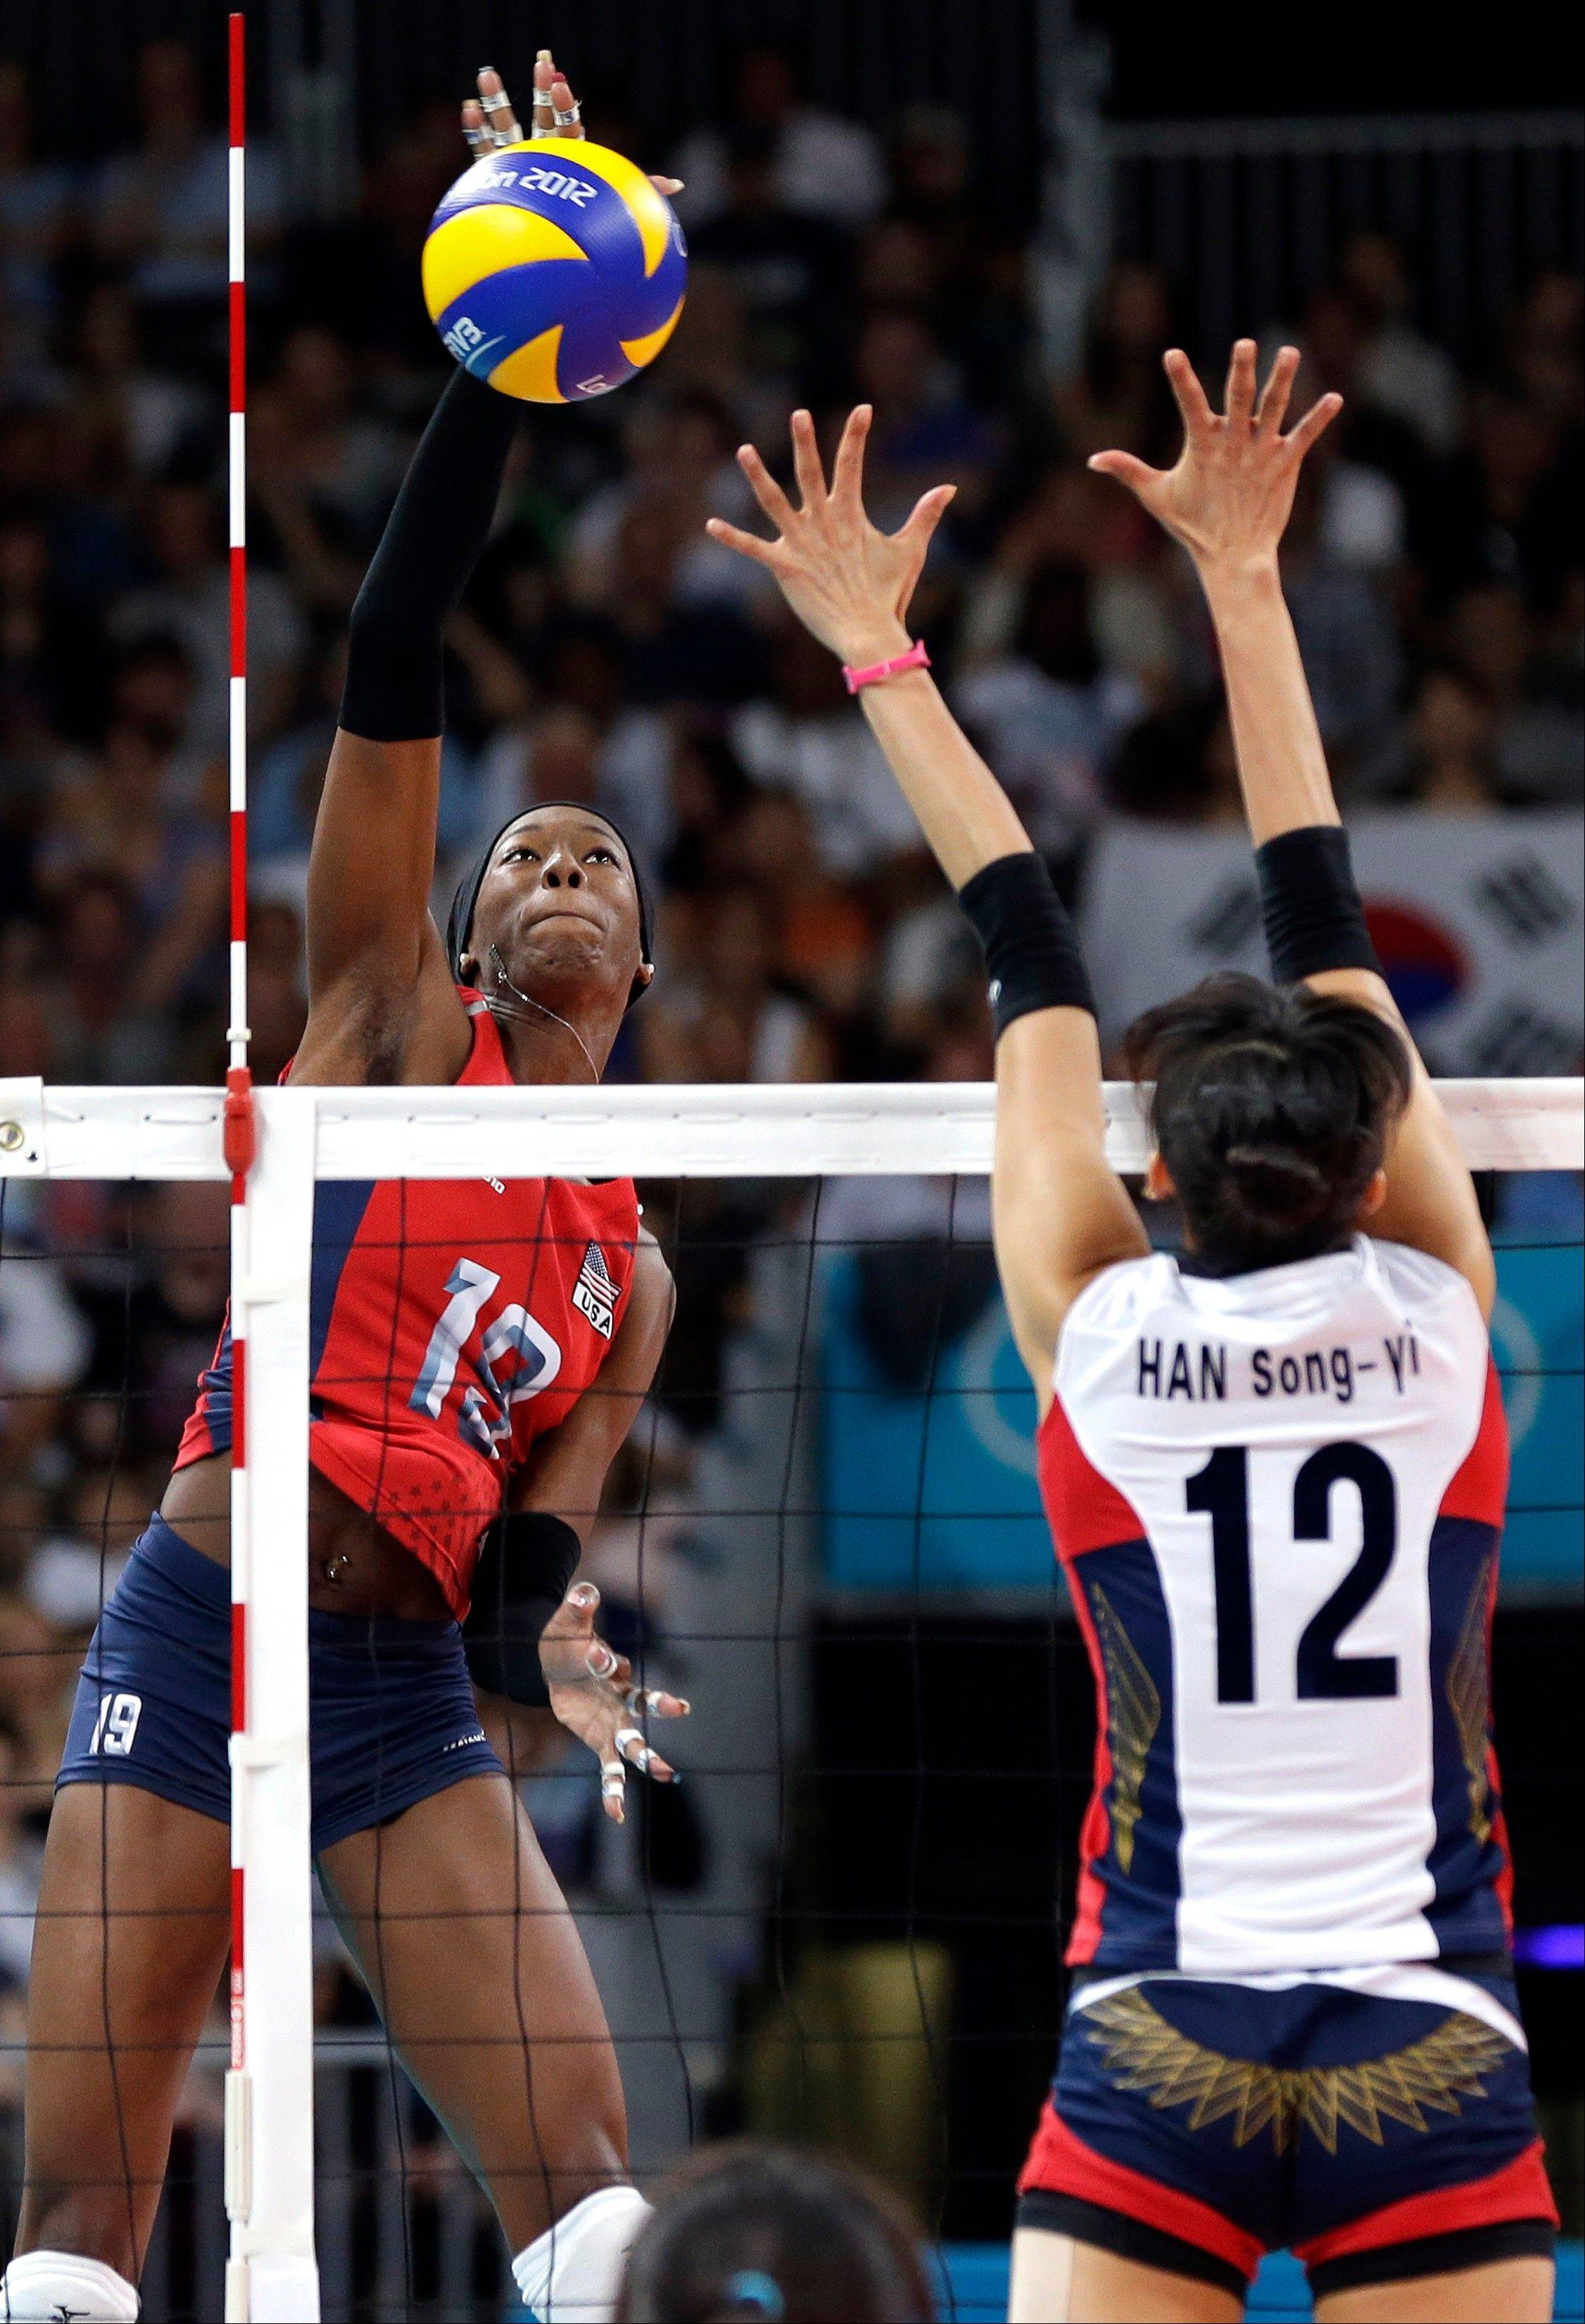 USA's Destinee Hooker (19) goes up for a smash in front of South Korea's Han Song-yi (12) during a women's volleyball semifinal match at the 2012 Summer Olympics Thursday, Aug. 9, 2012, in London.